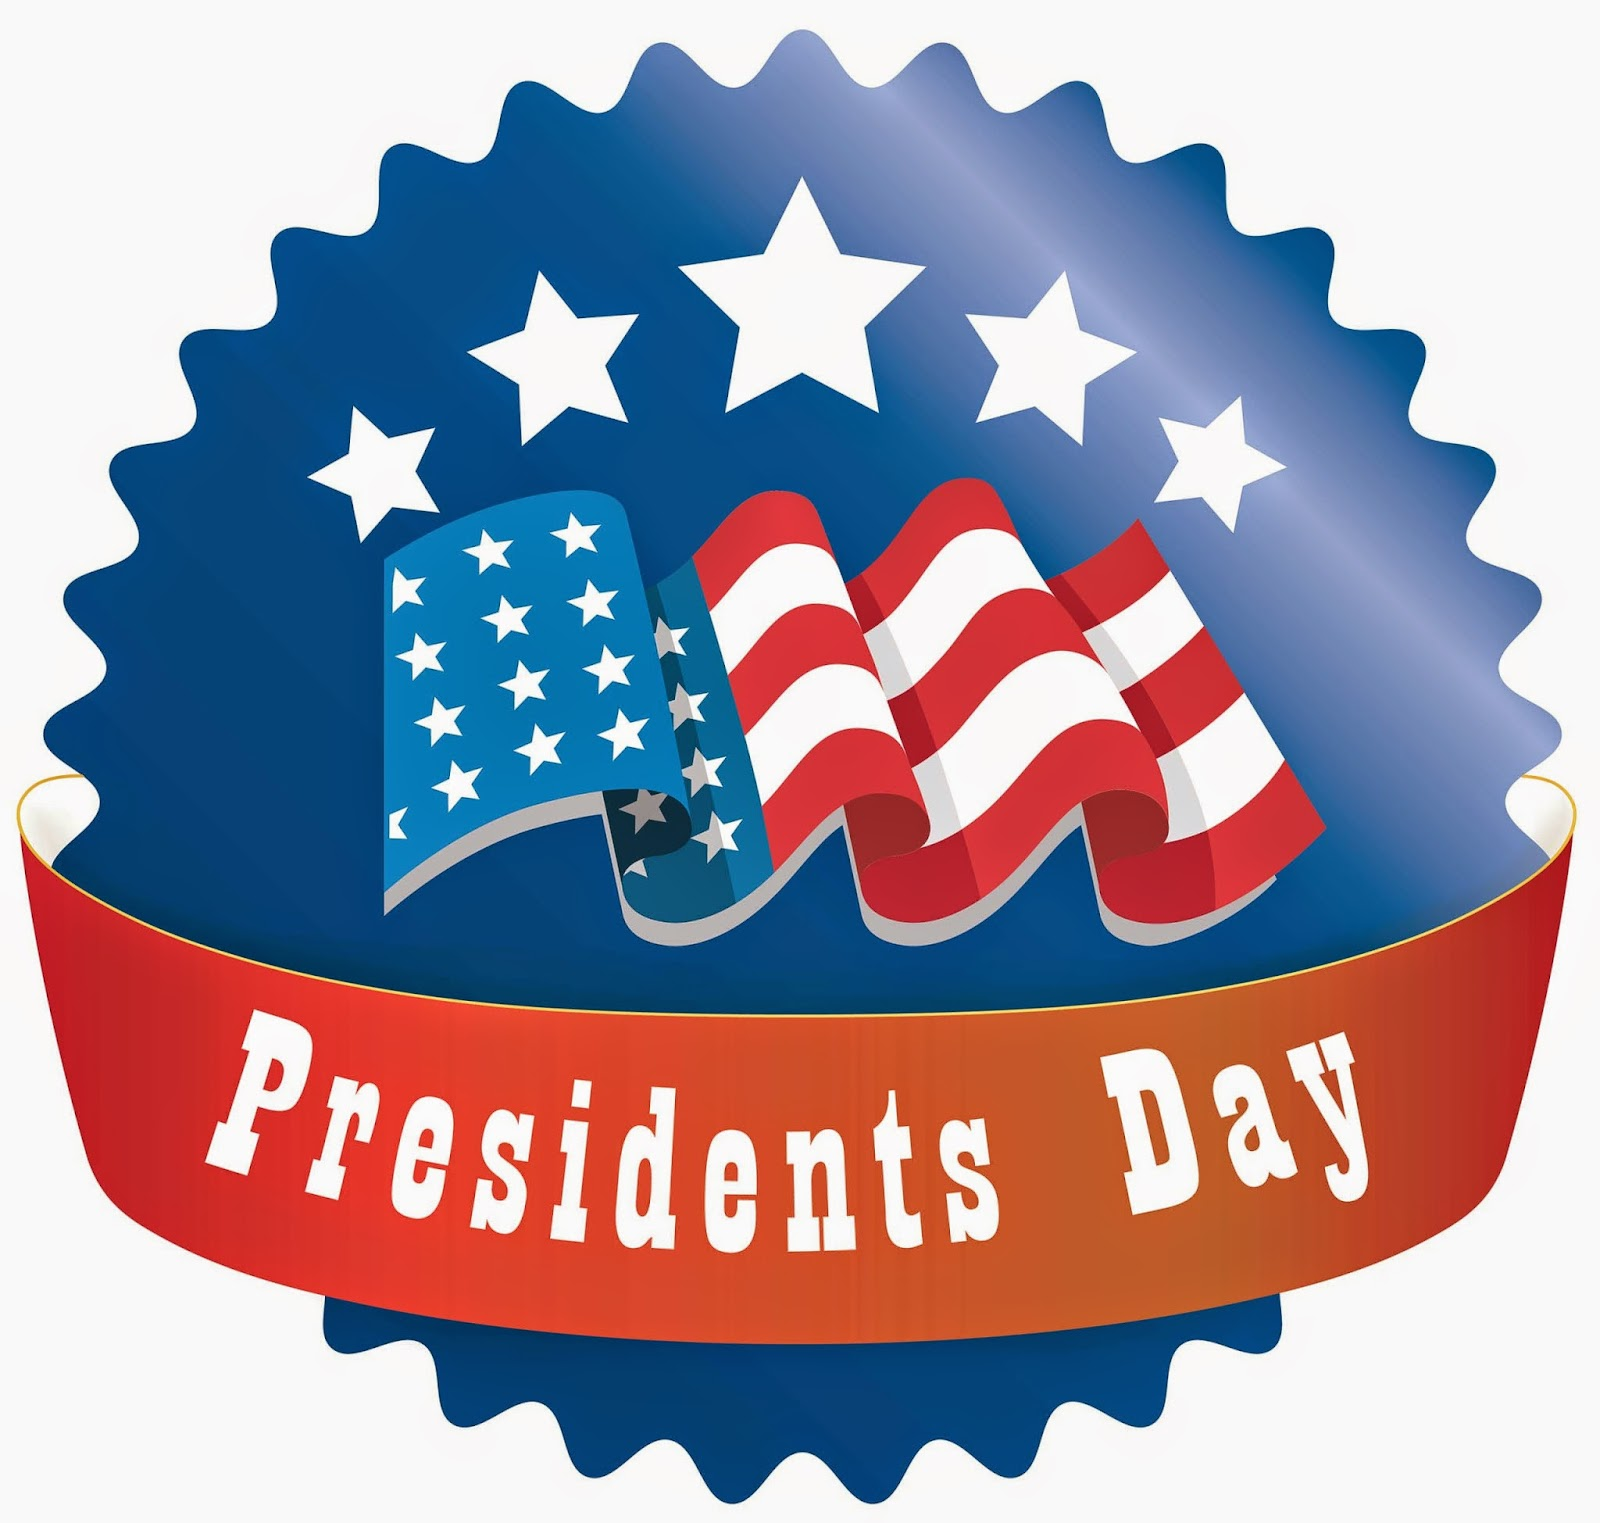 clip art royalty free library Memorial clipart presidents day. Cliparts clip art library.